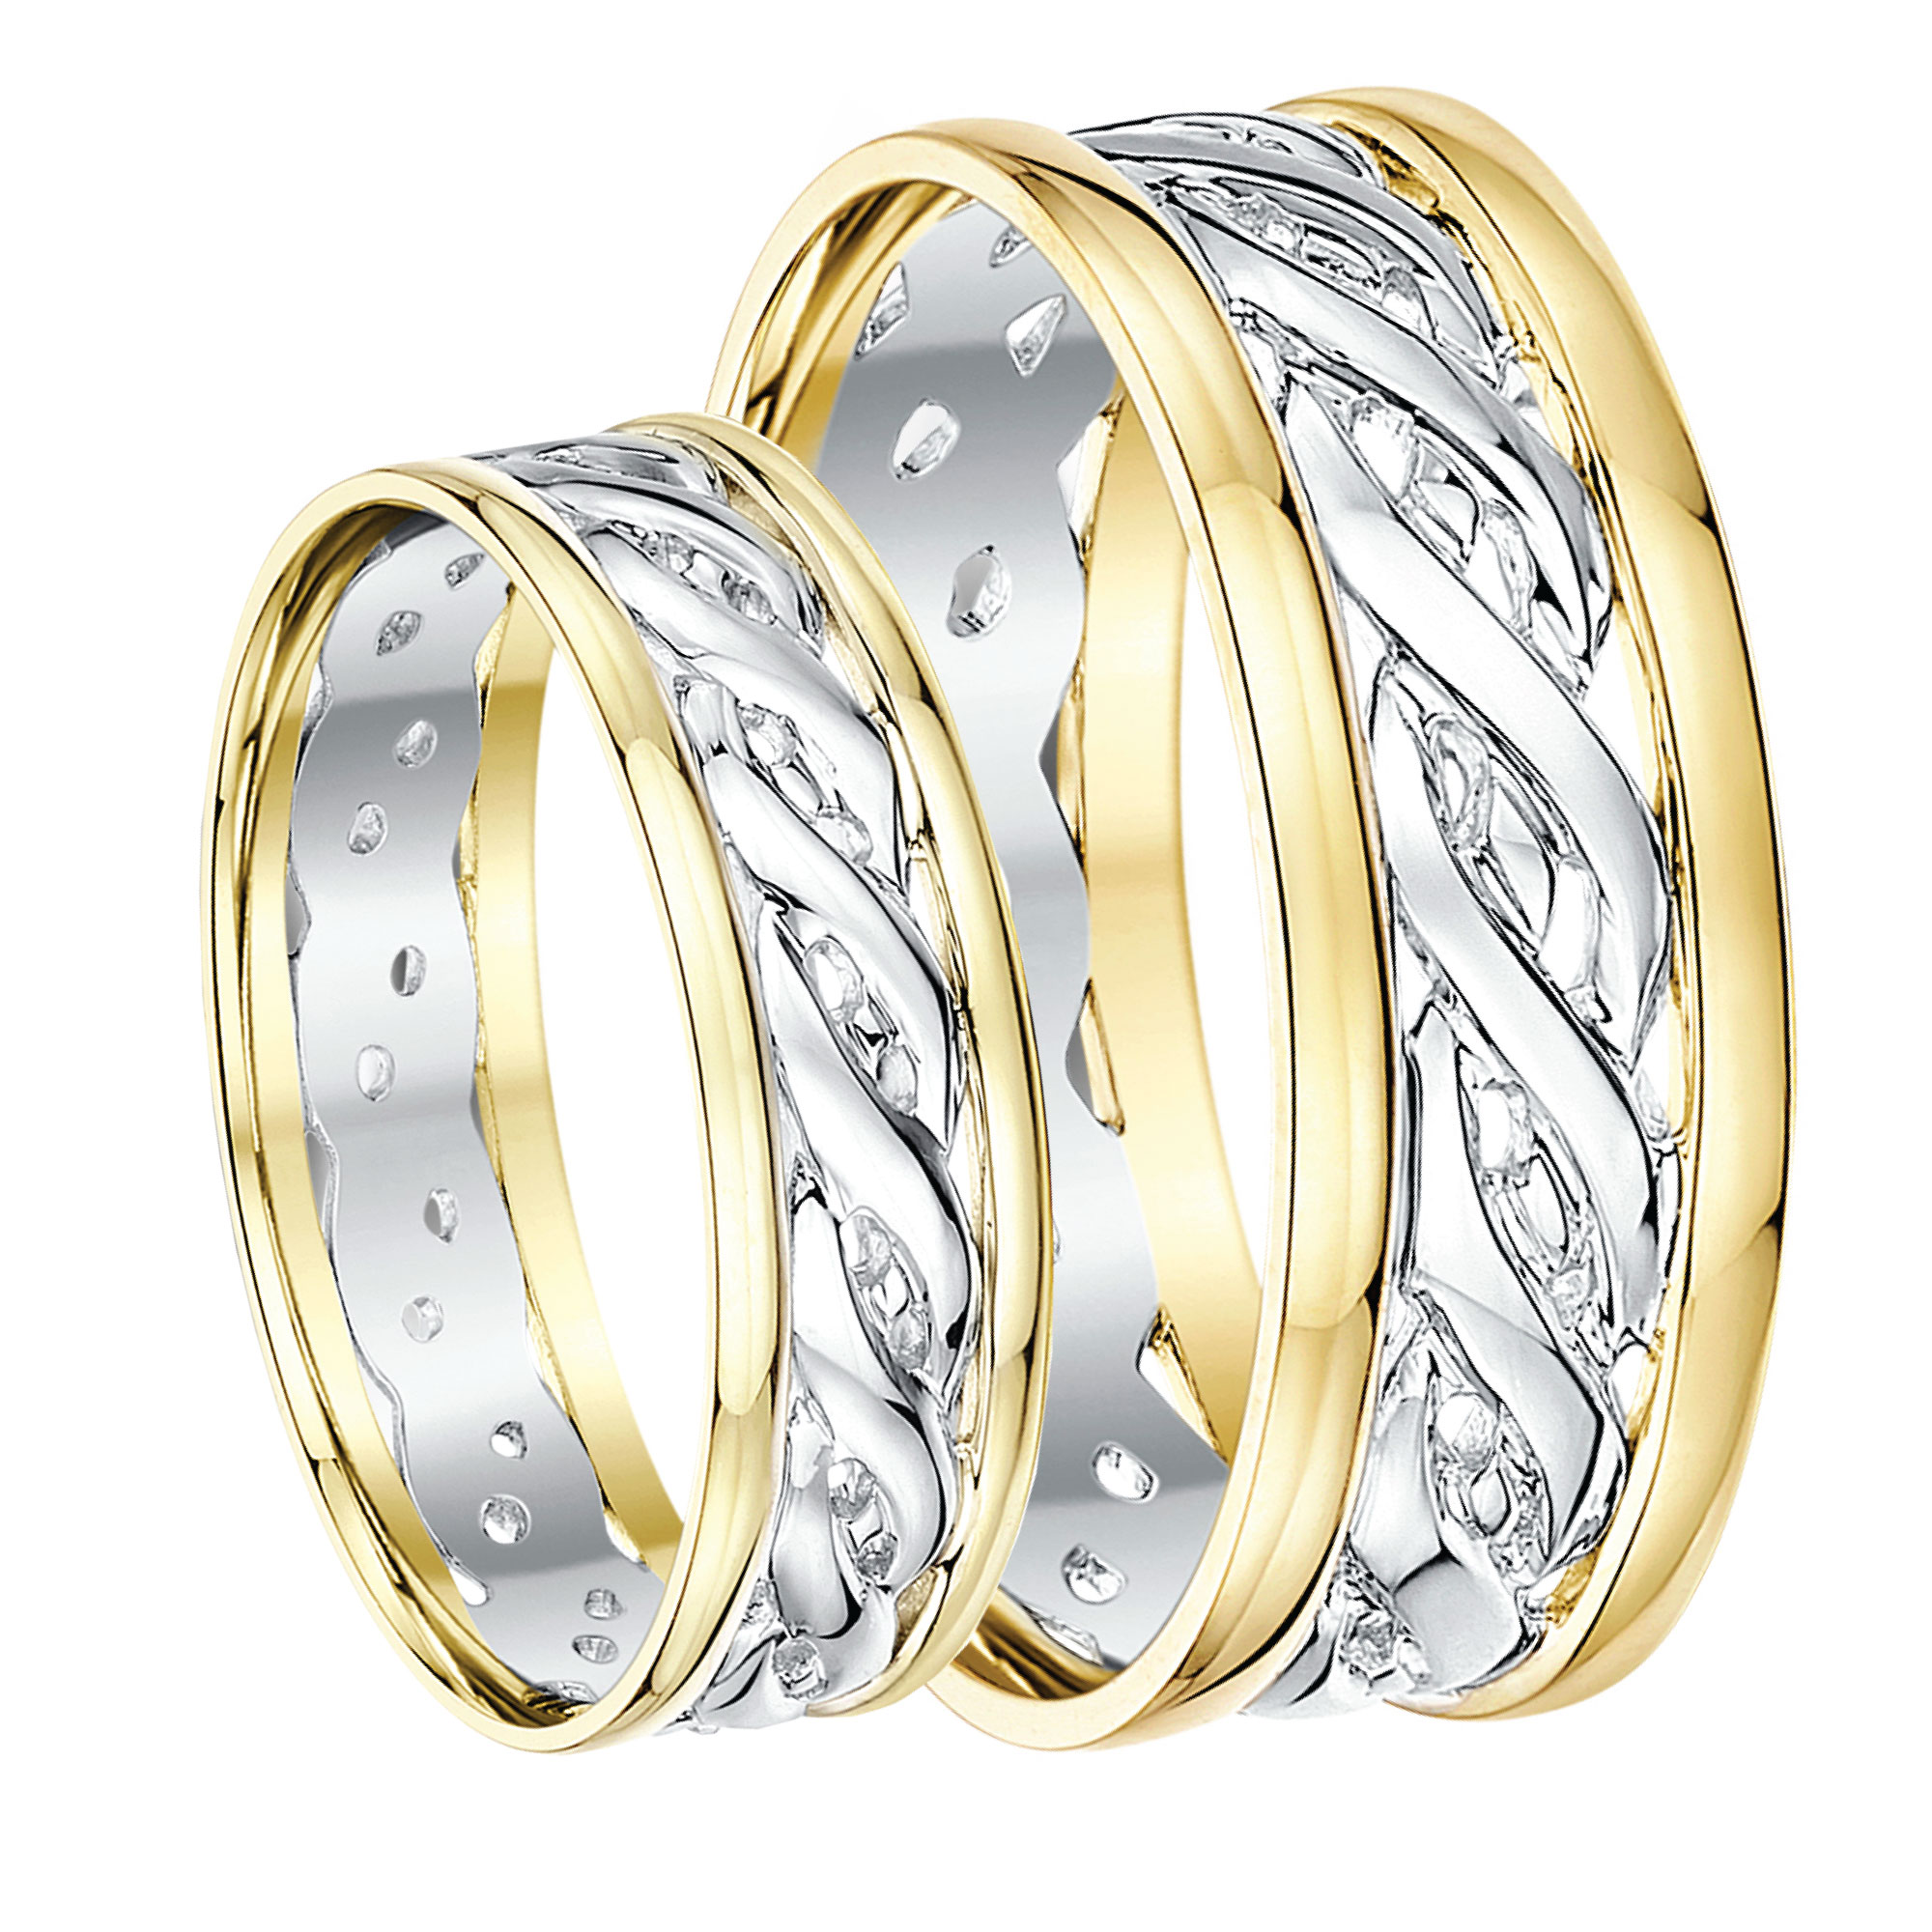 wedding rsc rings find rs engagement online size gaelic gold cz cocktail products brand jewelry and covenant ring watches at ep solitaire sparkling storemeister